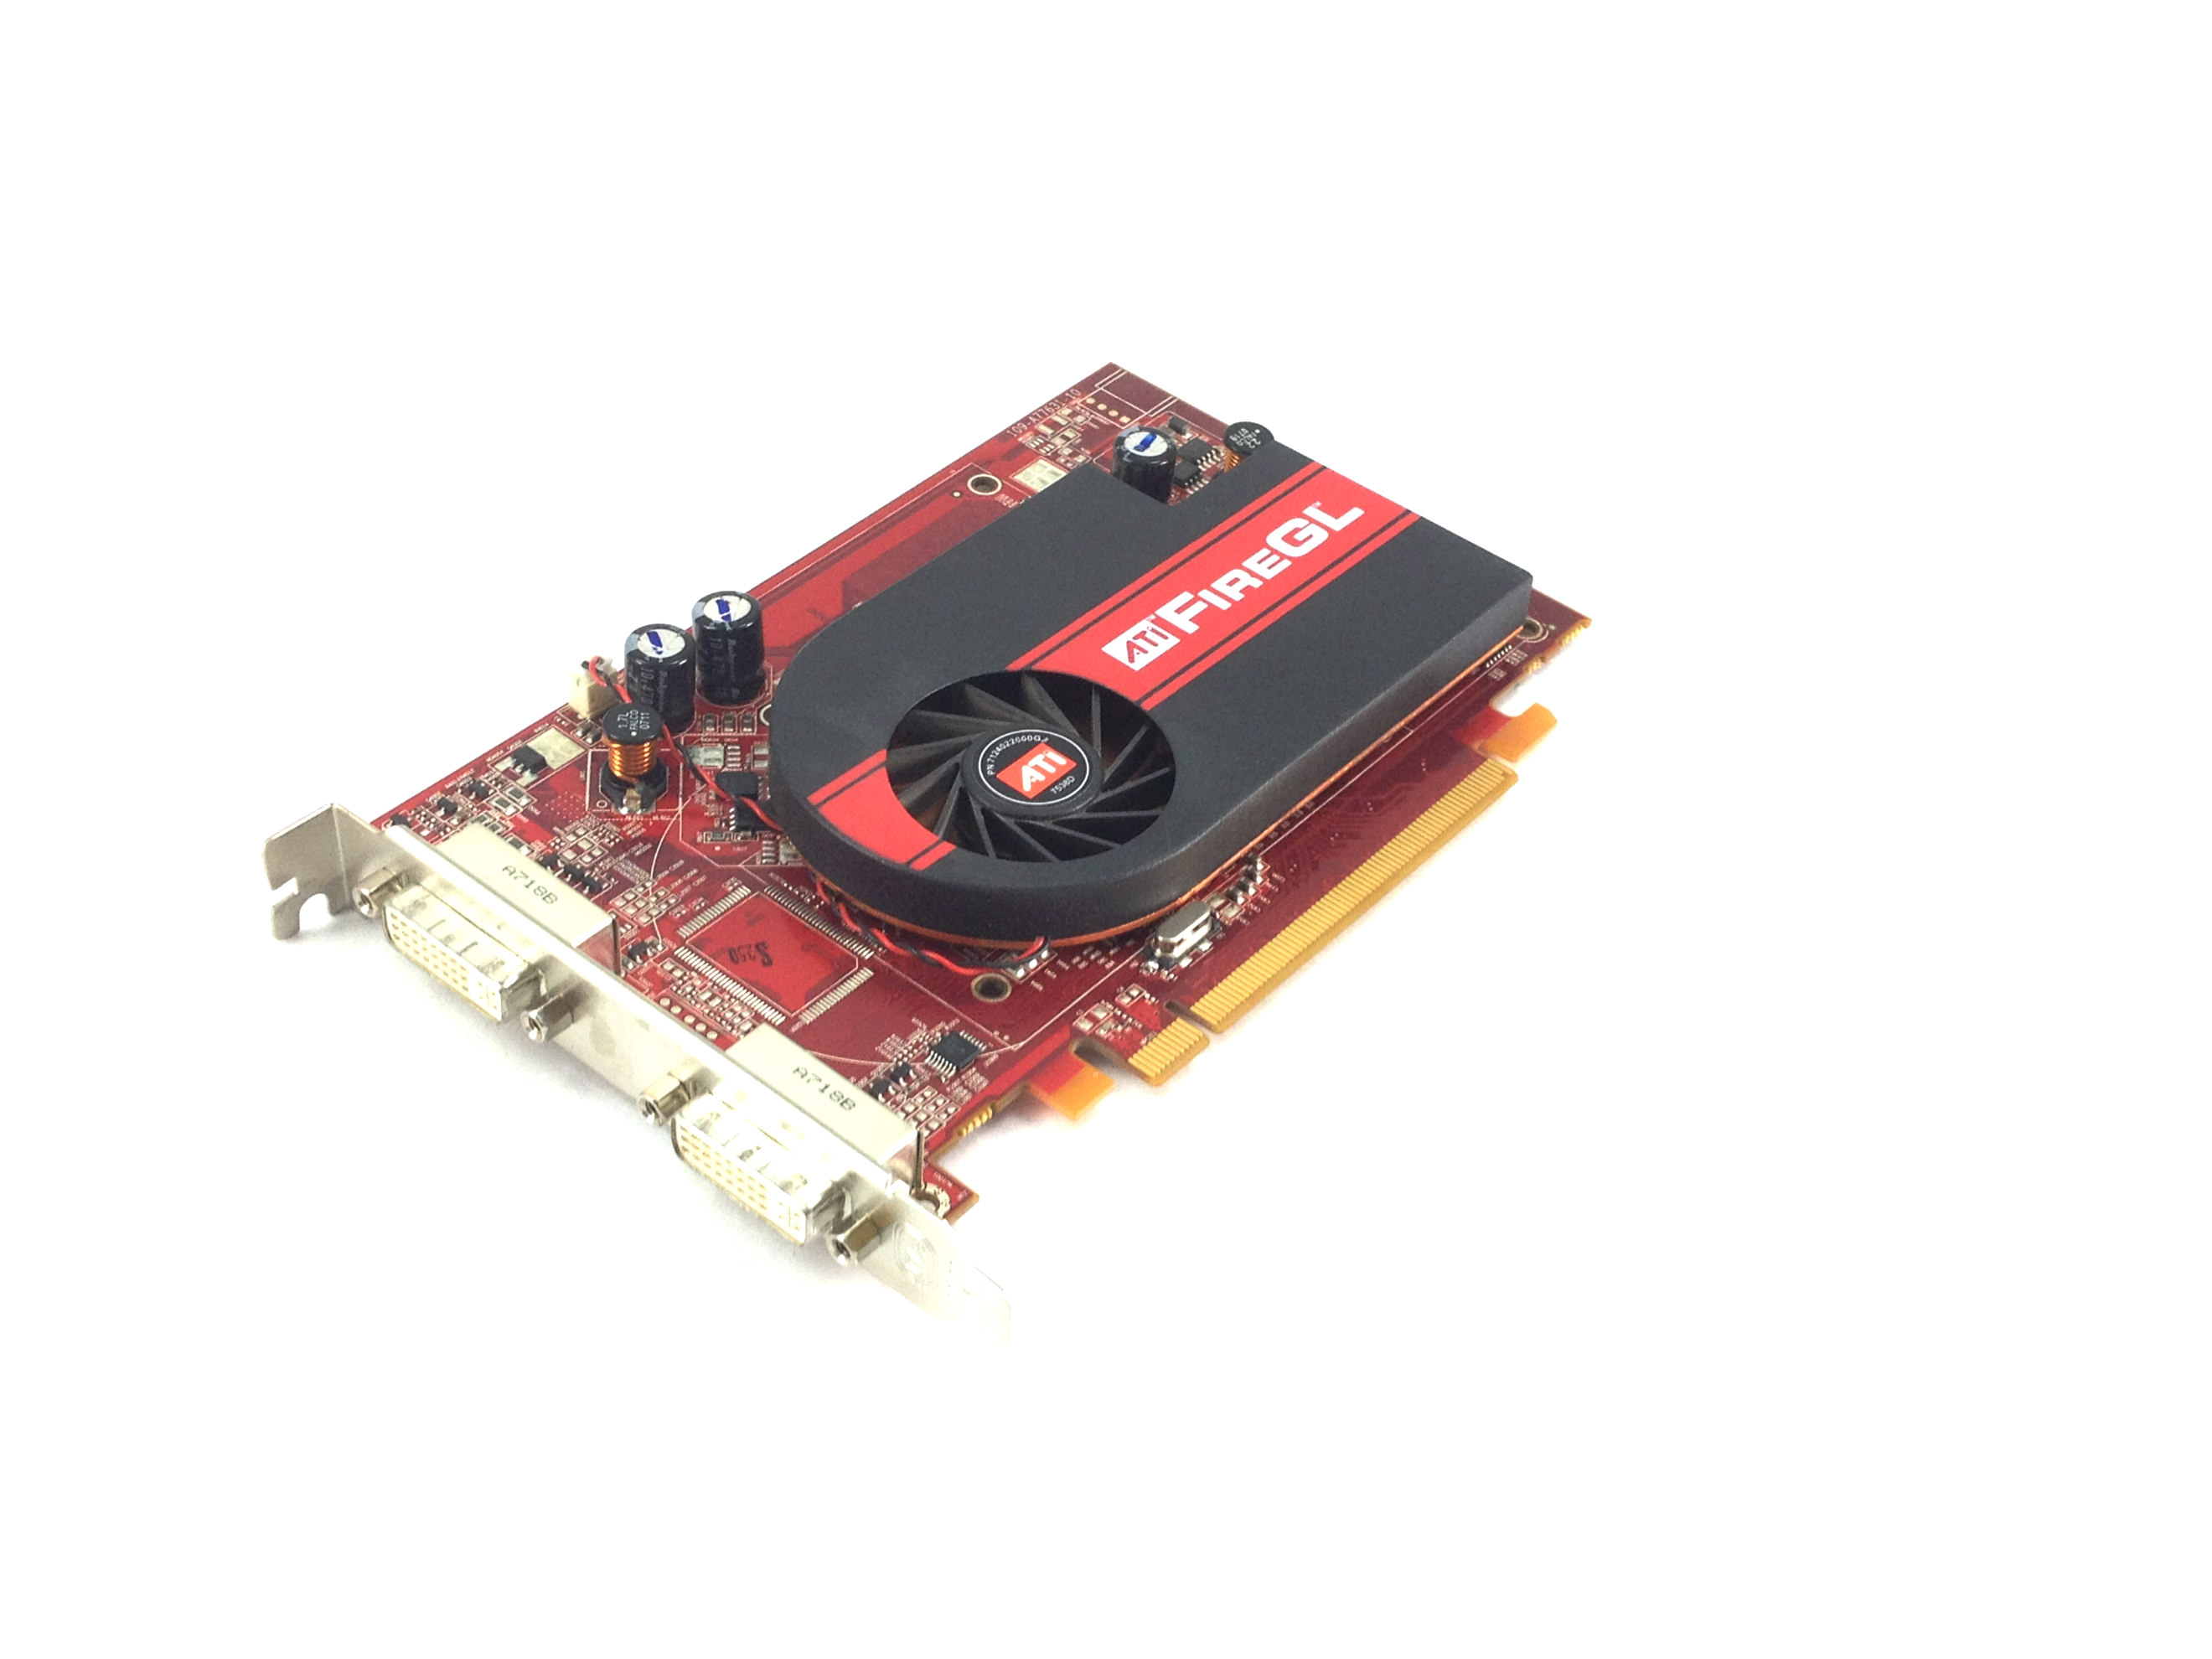 ATI FireGL V3350 256MB PCI-E Graphics Card (442227-001)